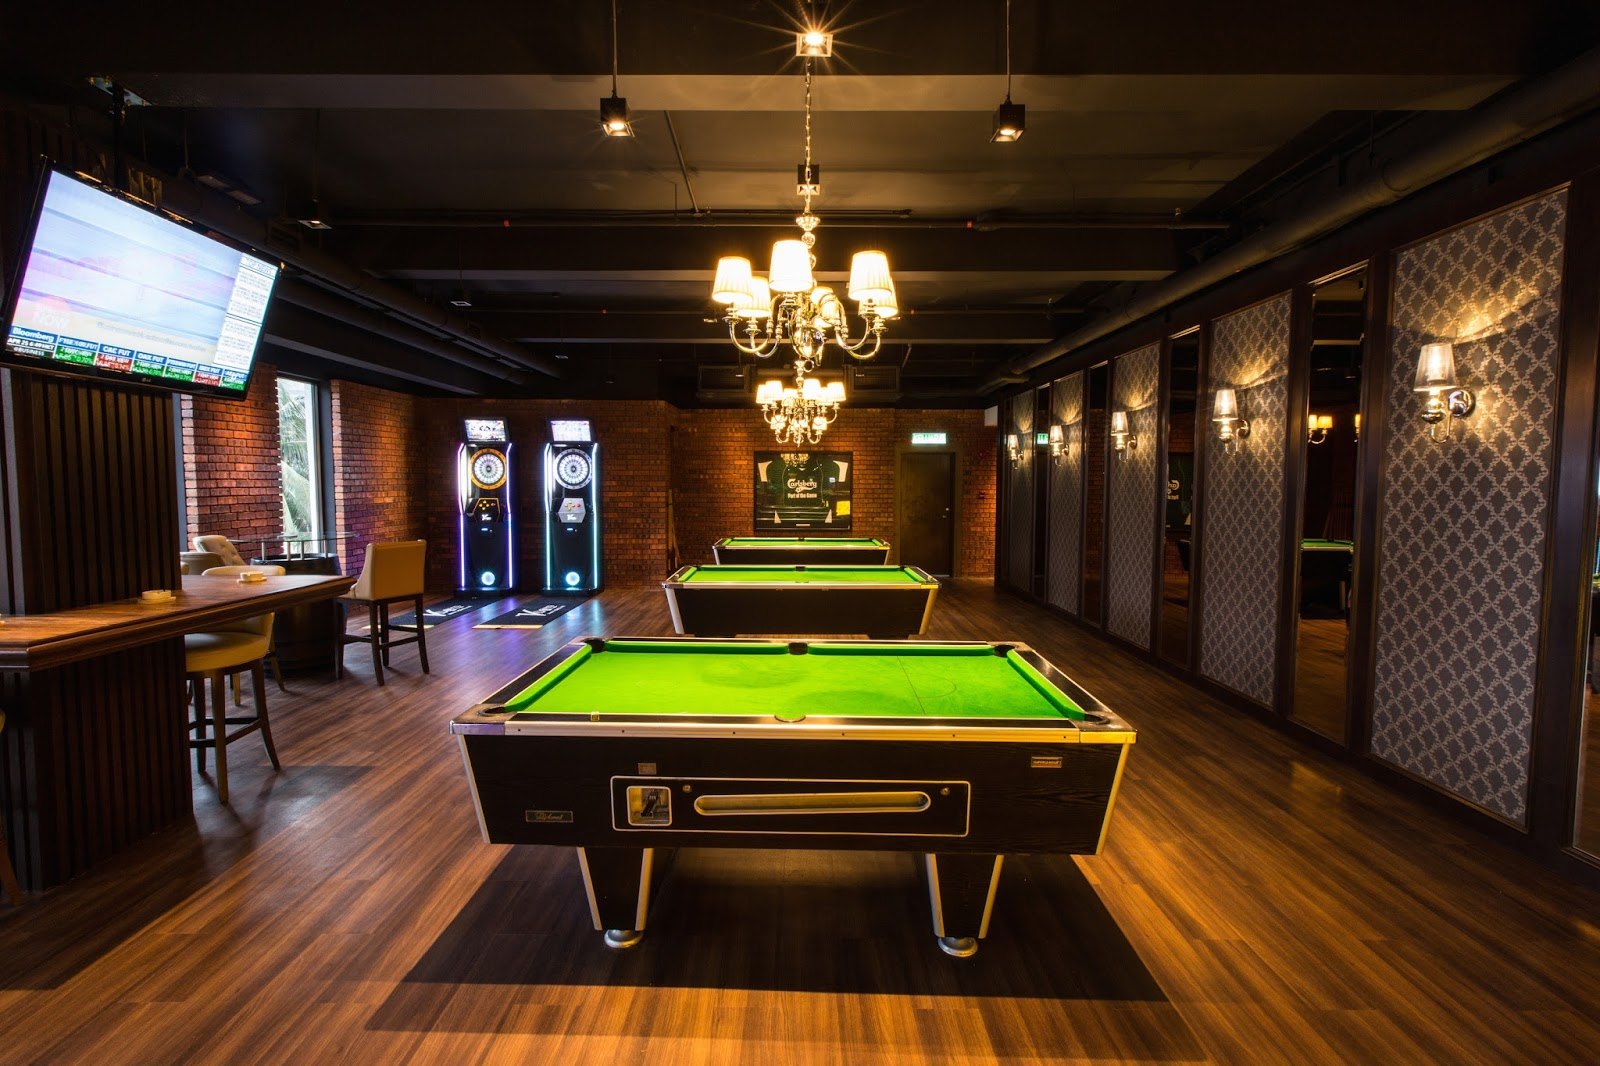 Refreshed Restyled Rebranded The Merchant Armada Hotel PJ - Retro pool table